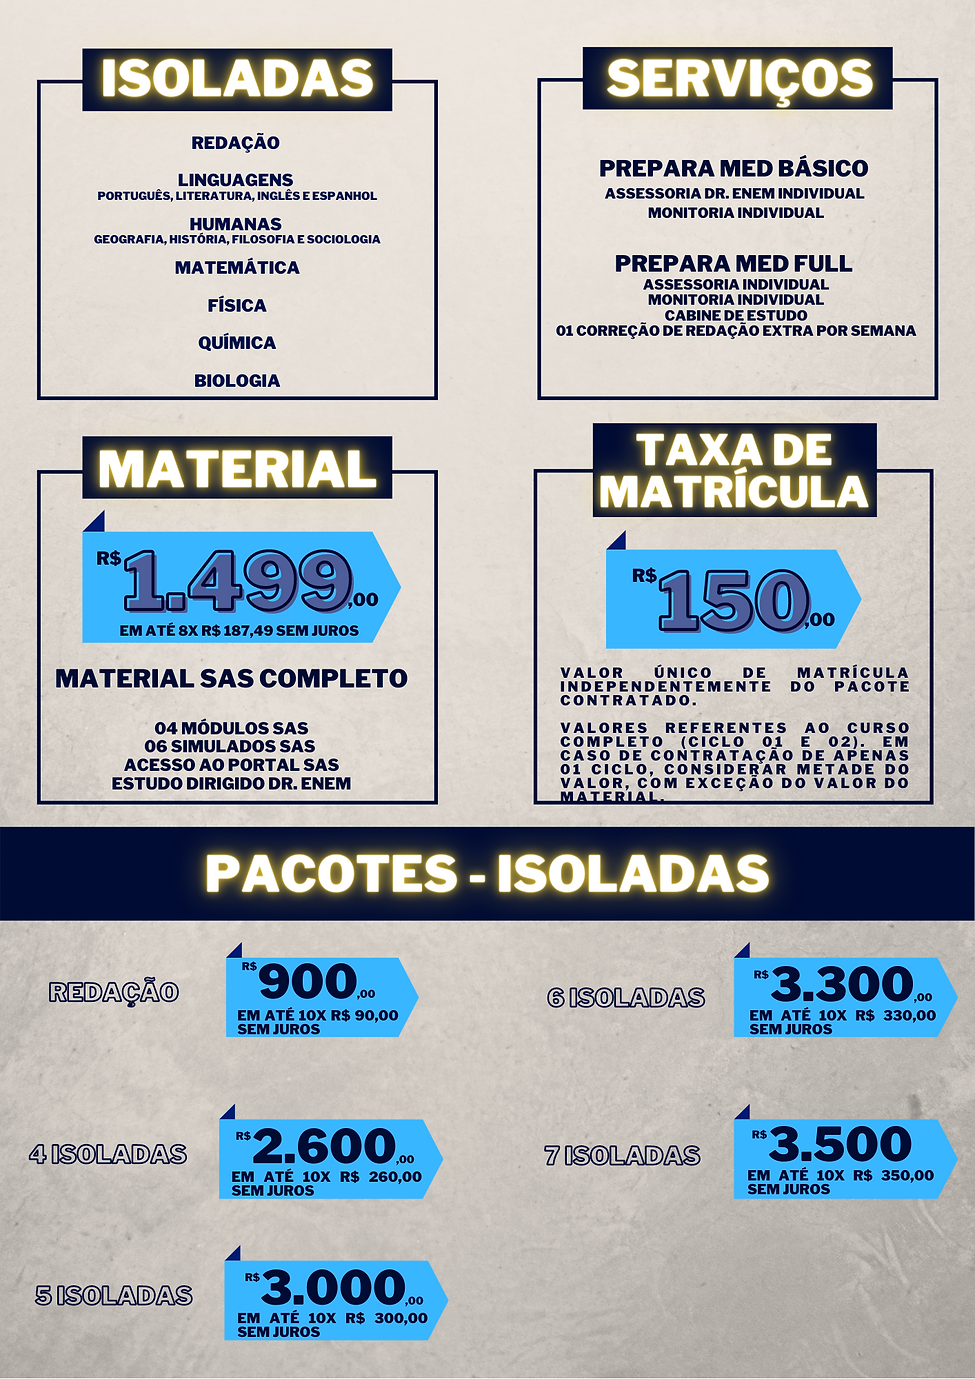 pacotes - isoladas (3).png